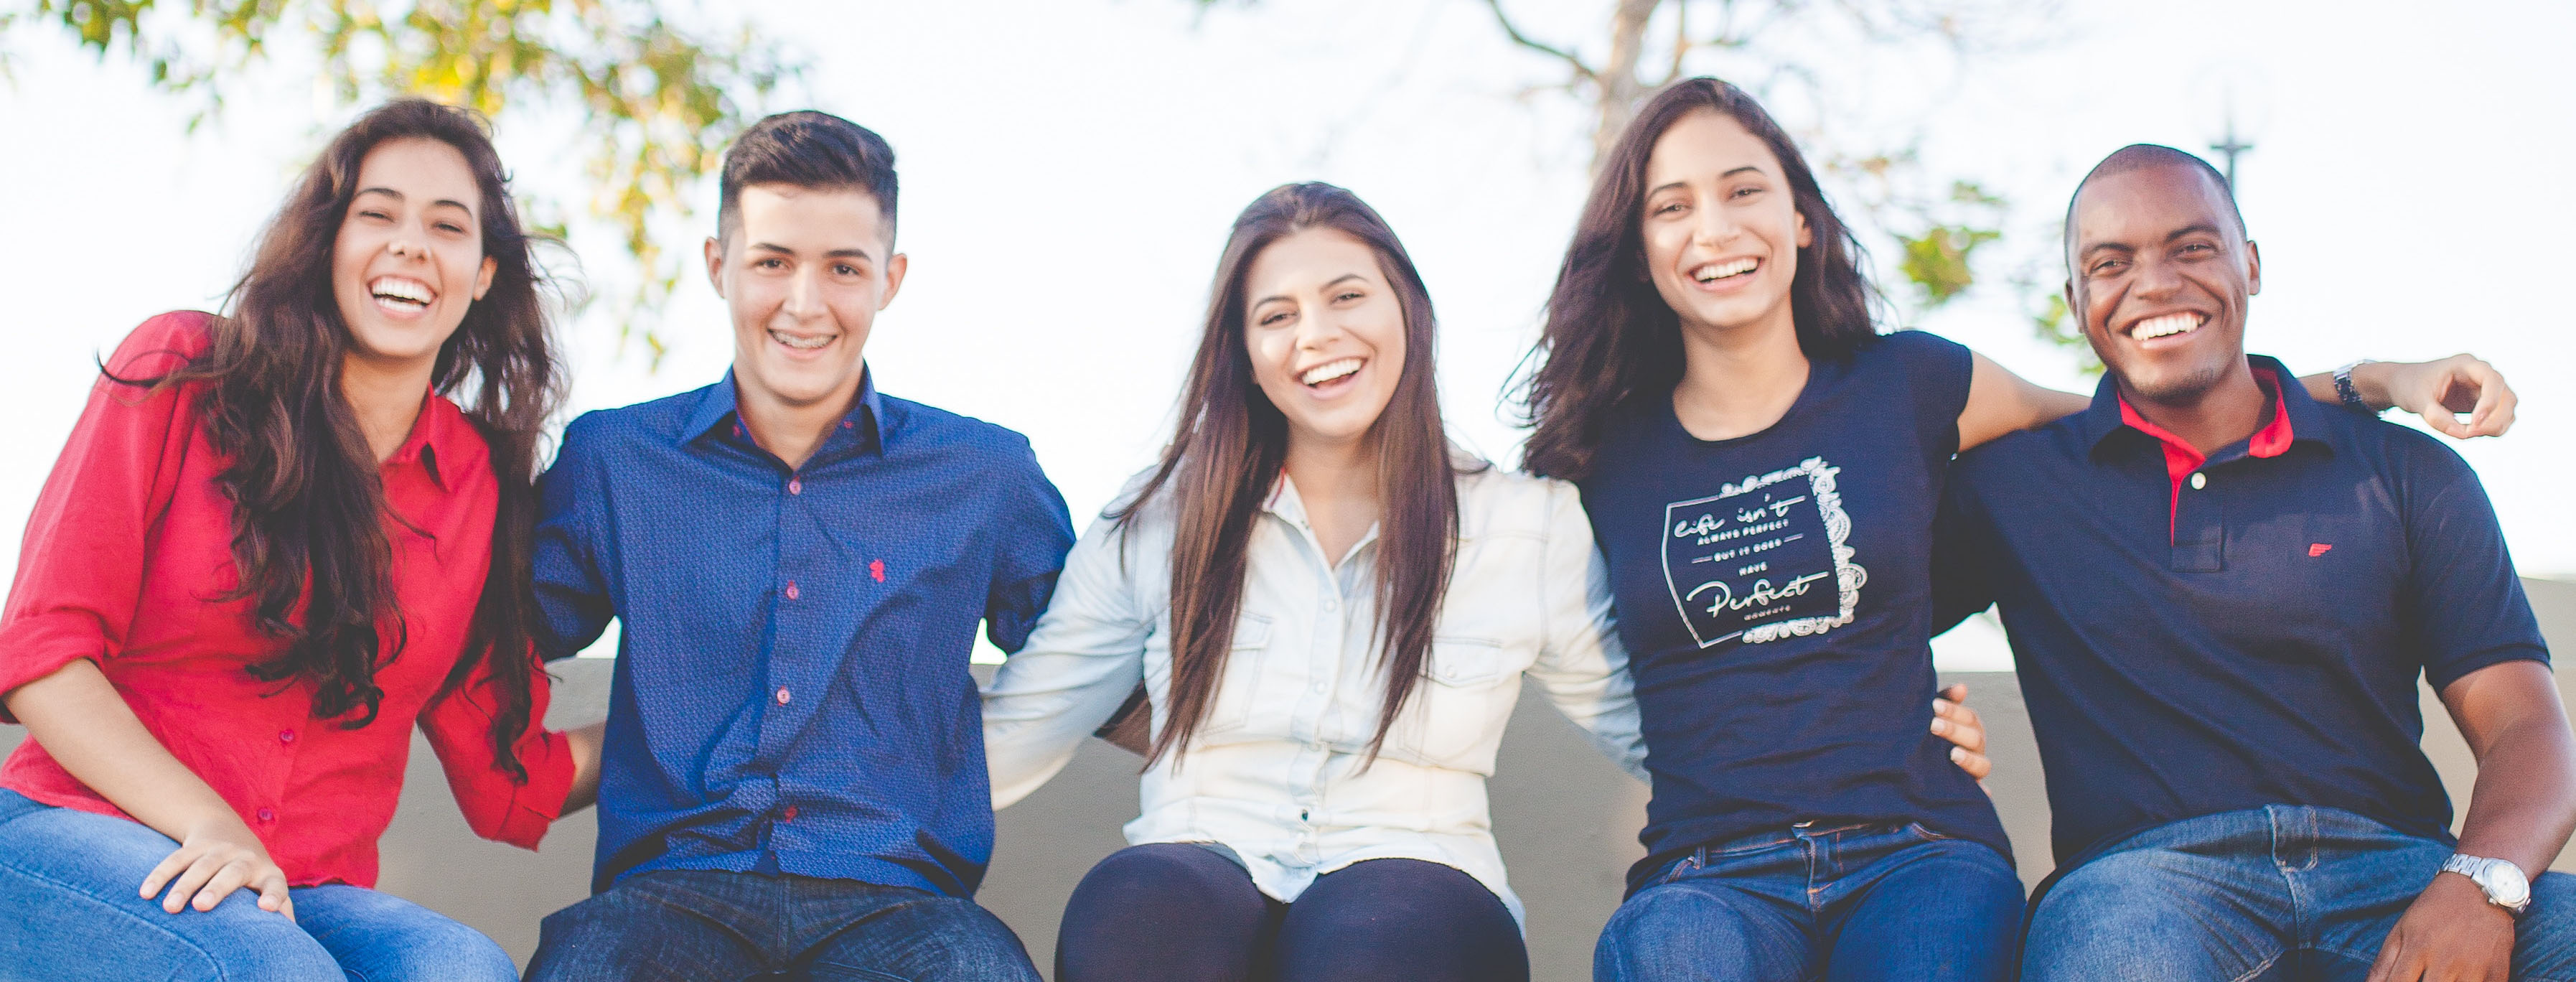 Five students sitting with their arms around each other smiling at the camera